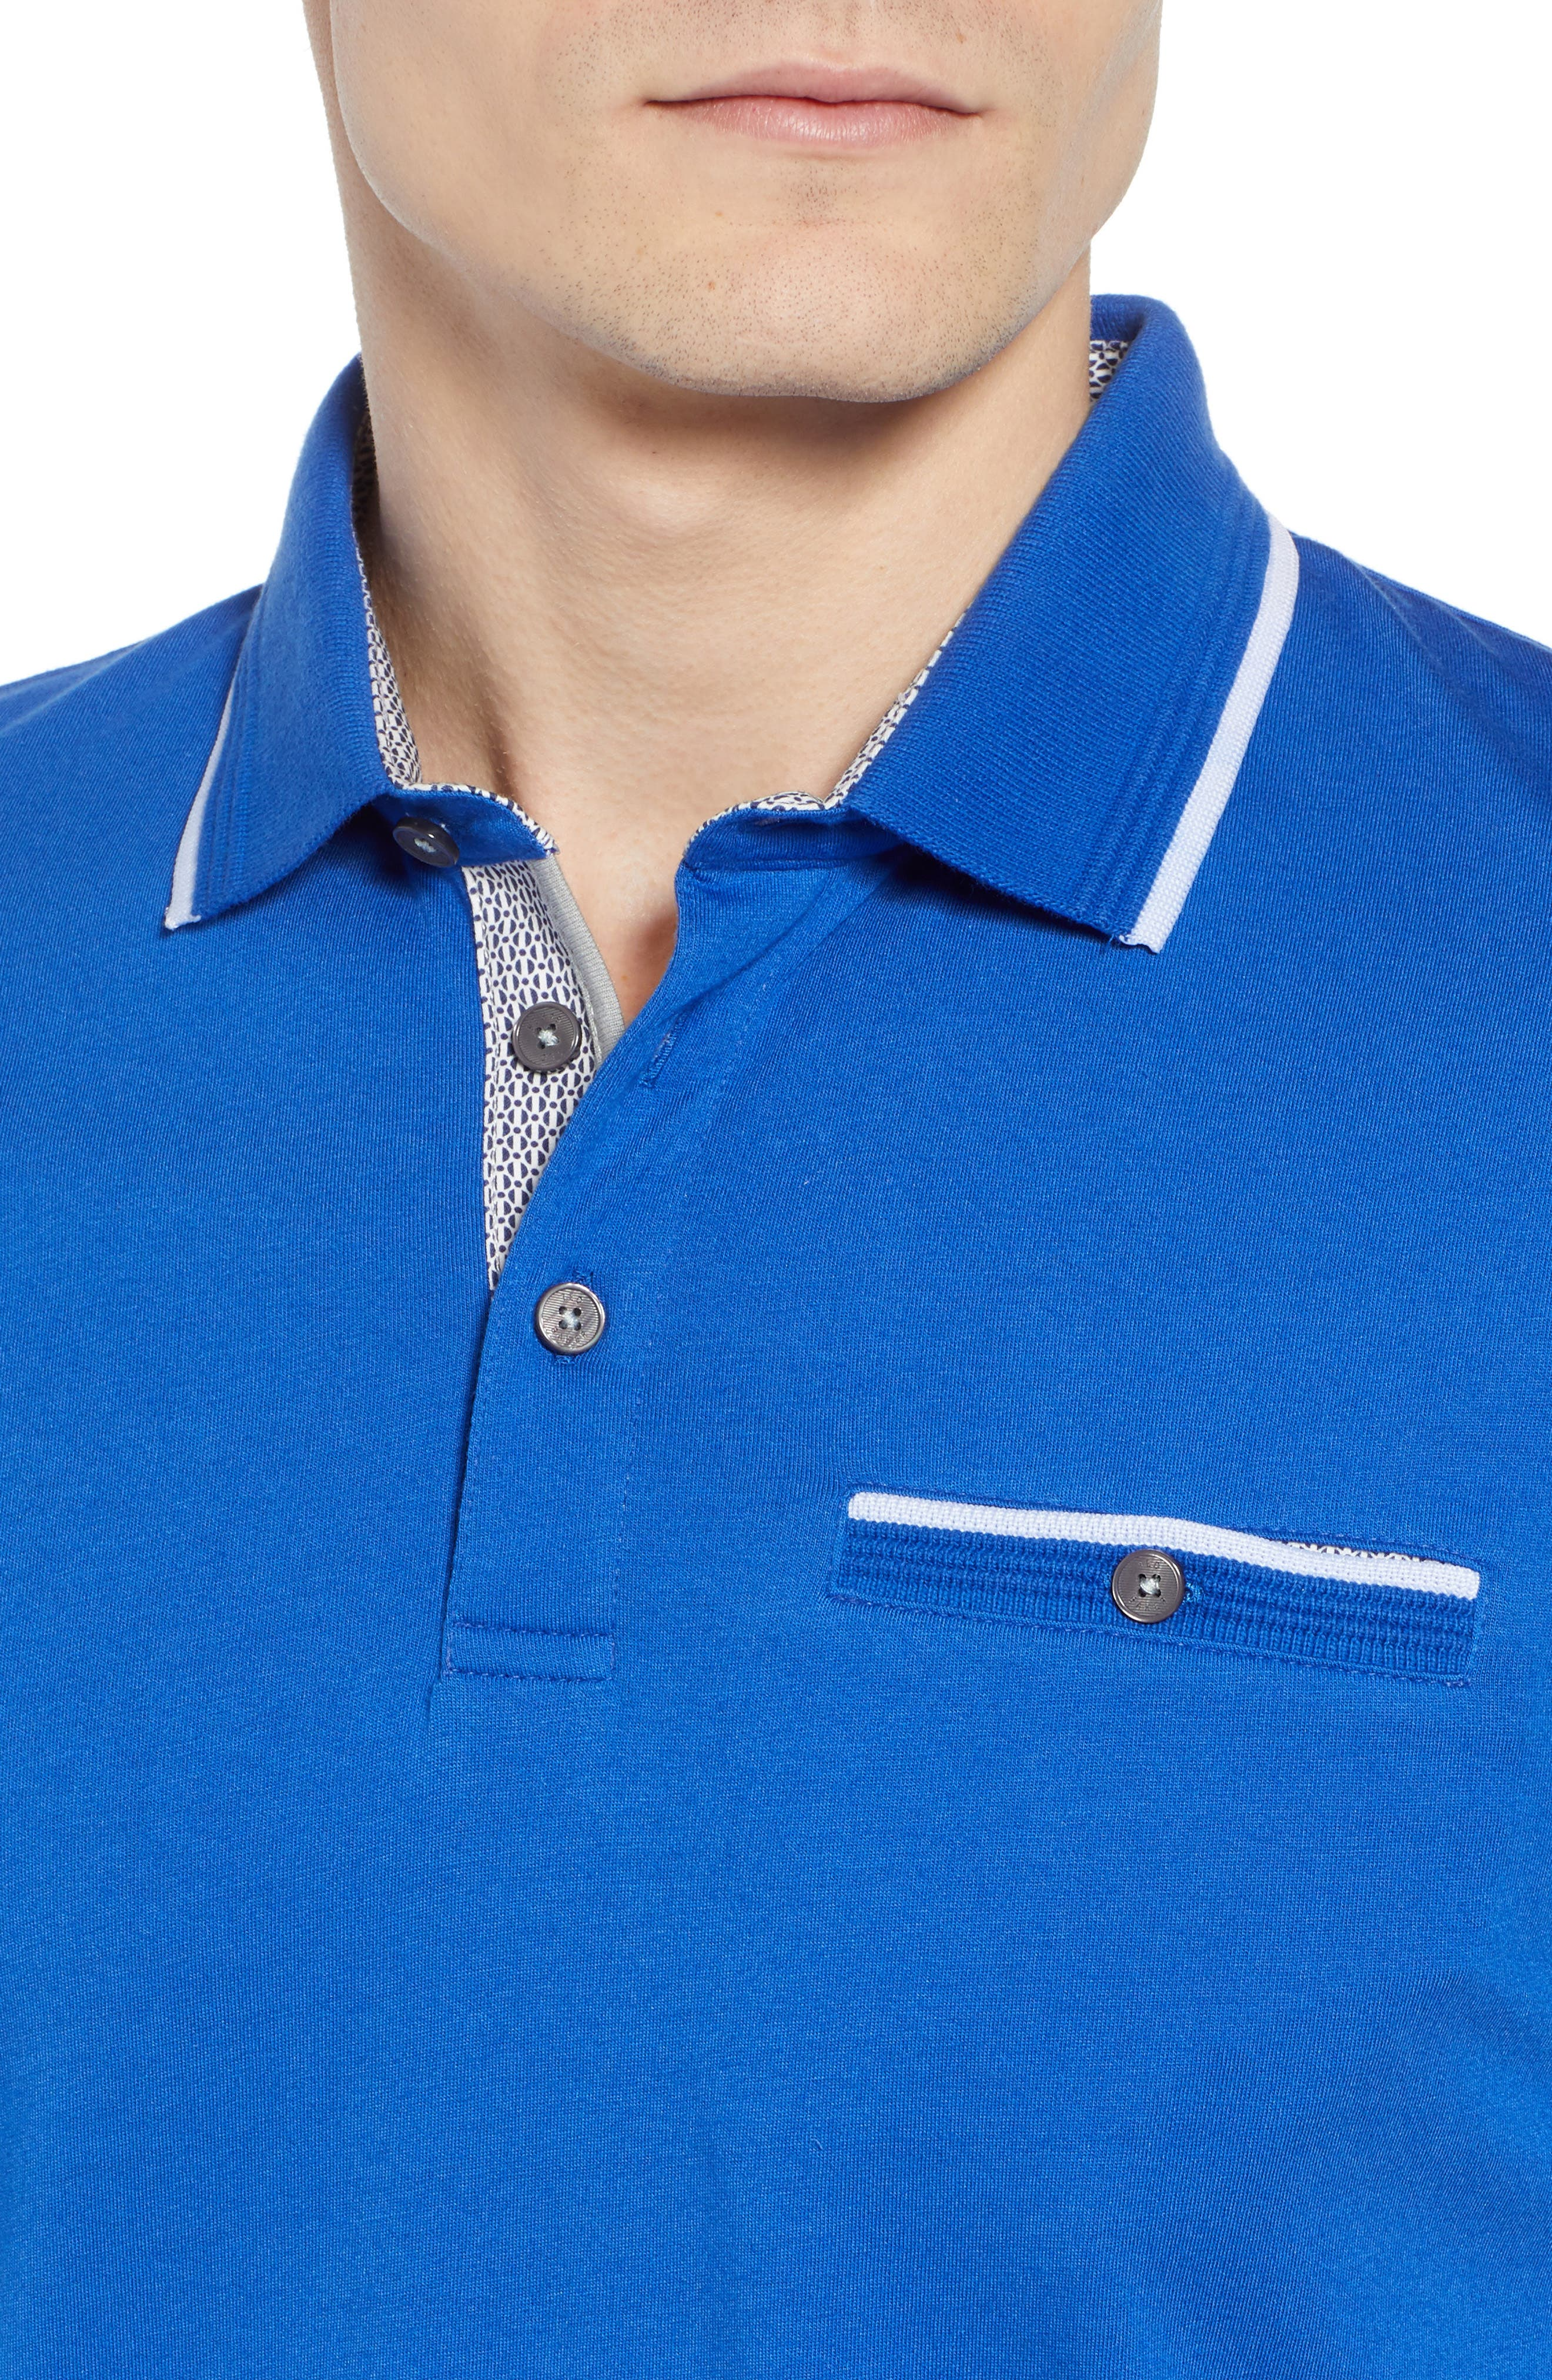 Derry Modern Slim Fit Polo,                             Alternate thumbnail 4, color,                             BRIGHT BLUE